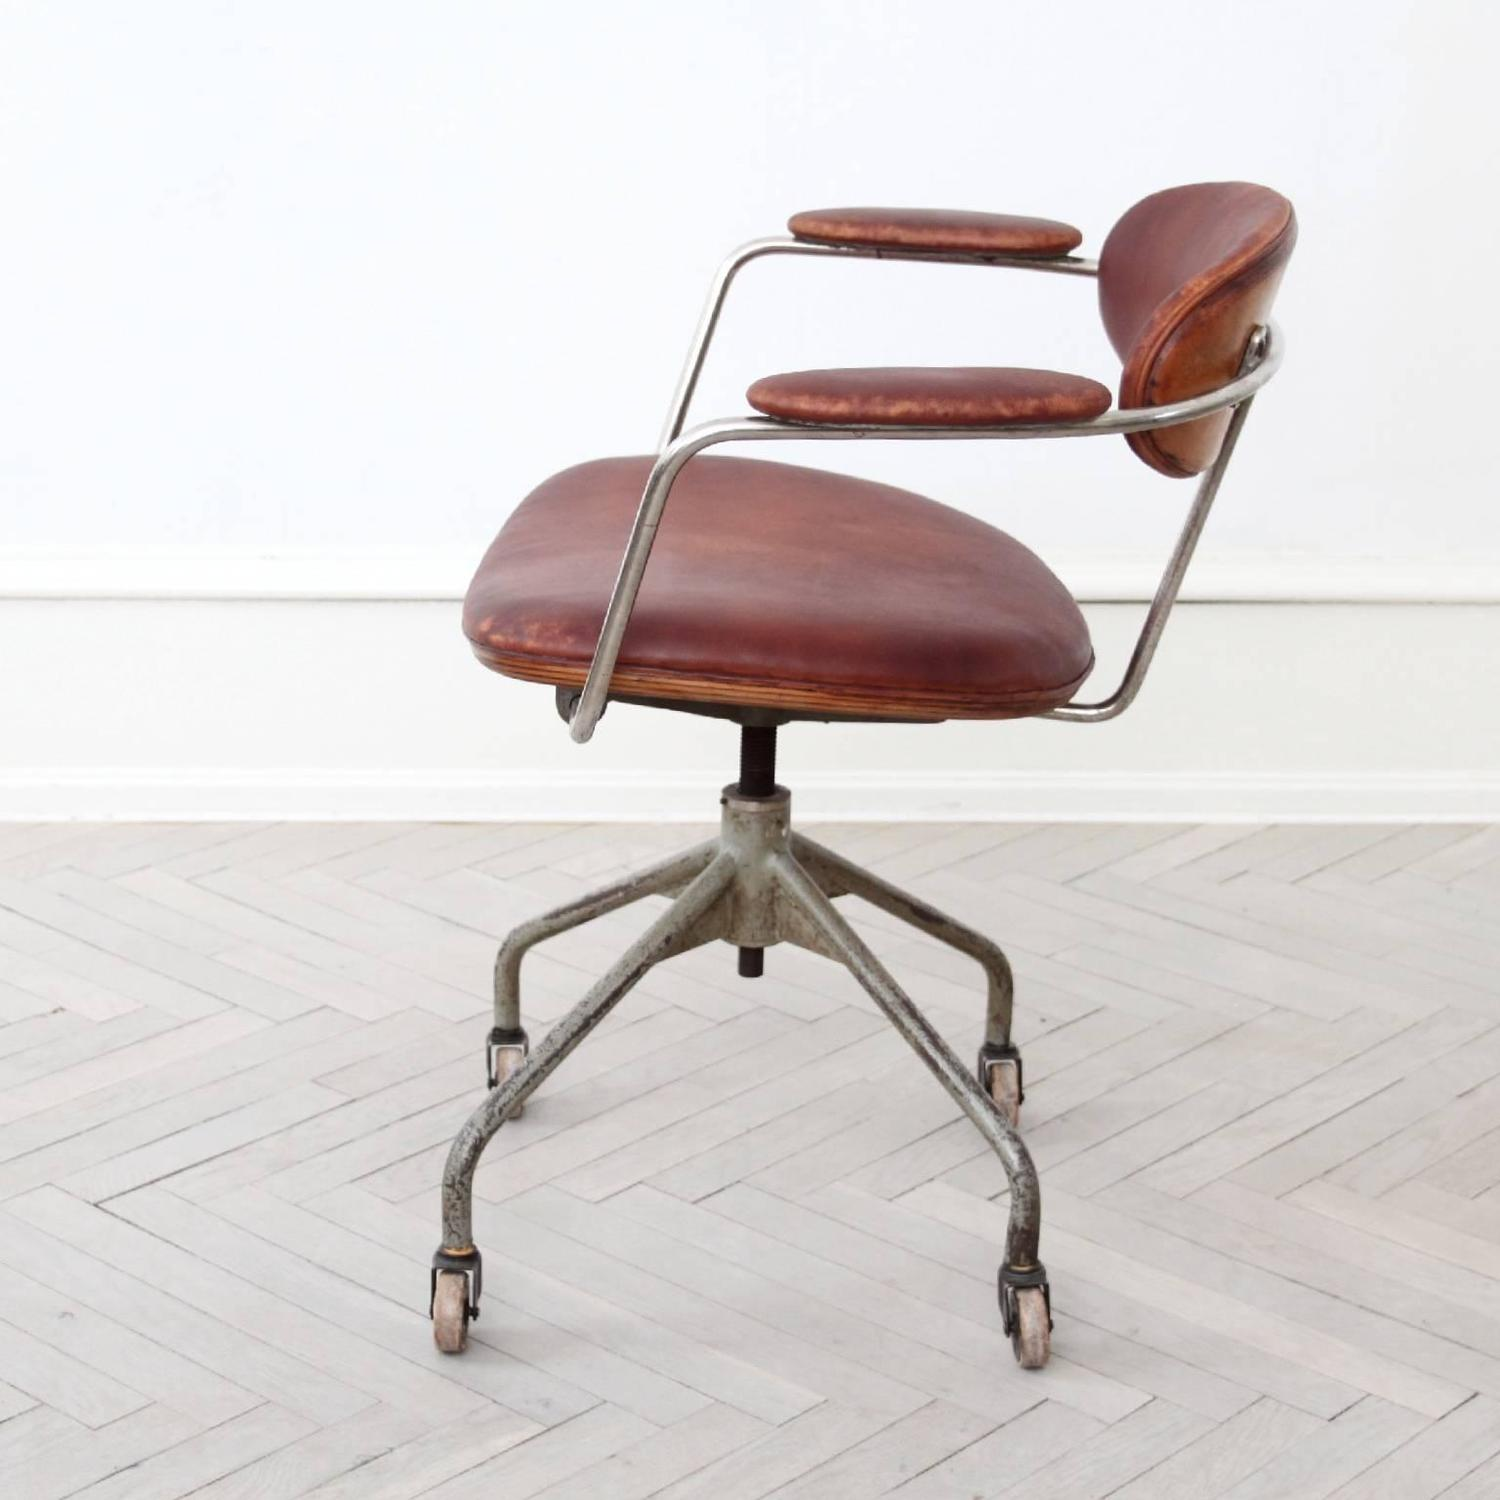 Hans J Wegner Extremely Rare Swivel Chair For Sale At 1stdibs